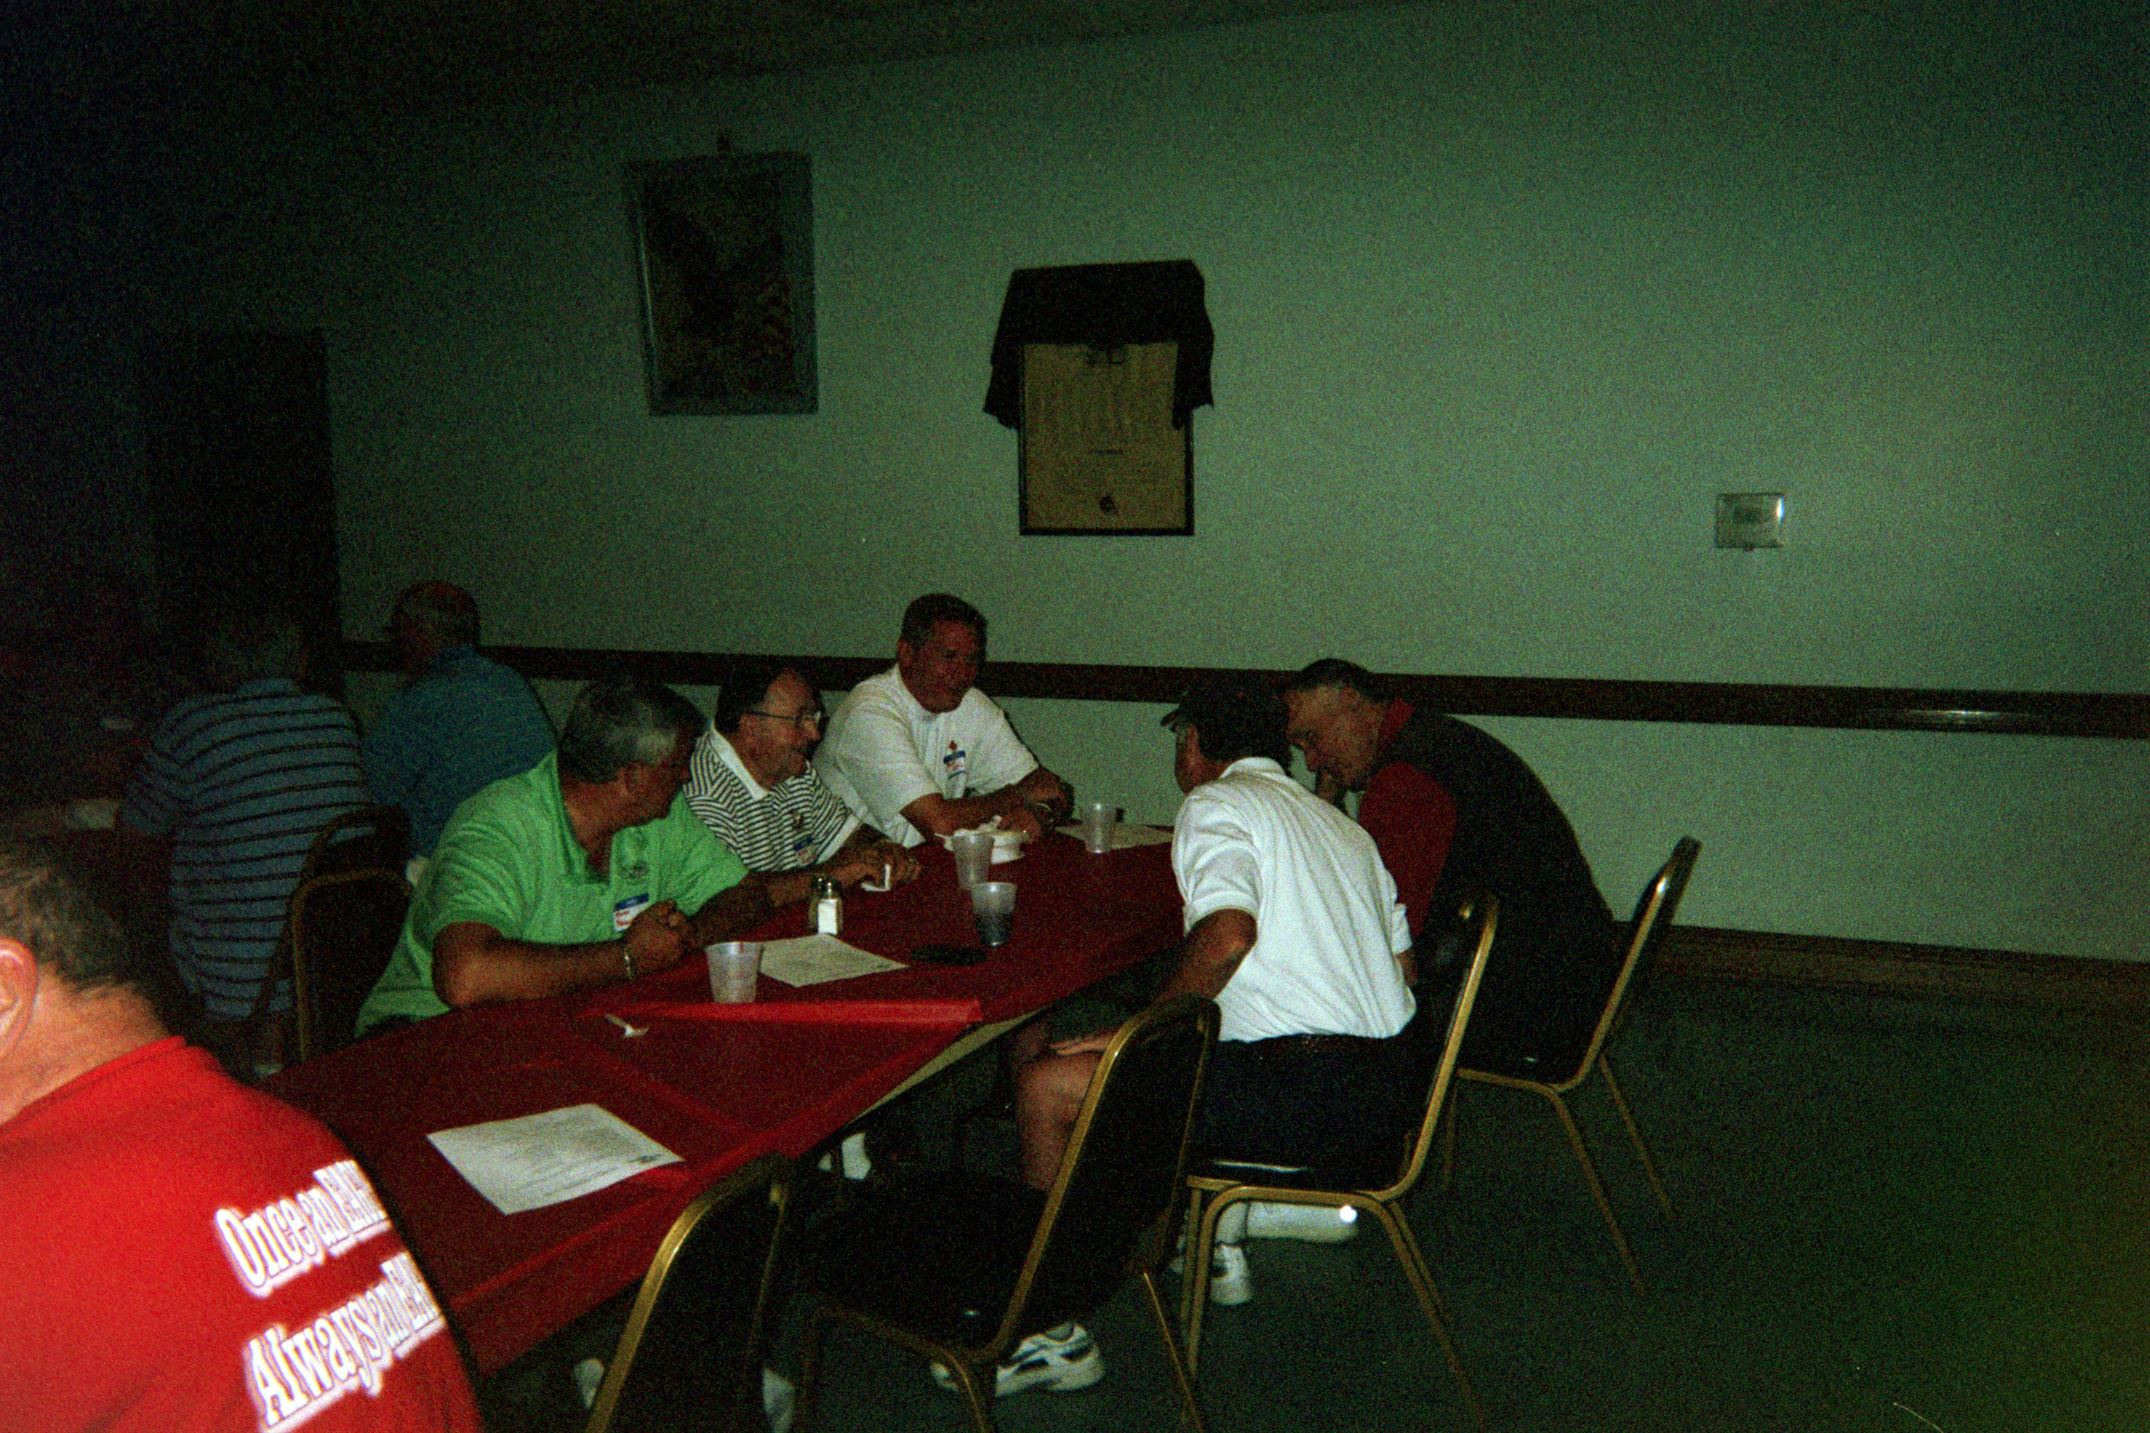 Mark Pasqualone, Mike Pasqualone, Brad Ellis, Dick Pierece, Bill Koval